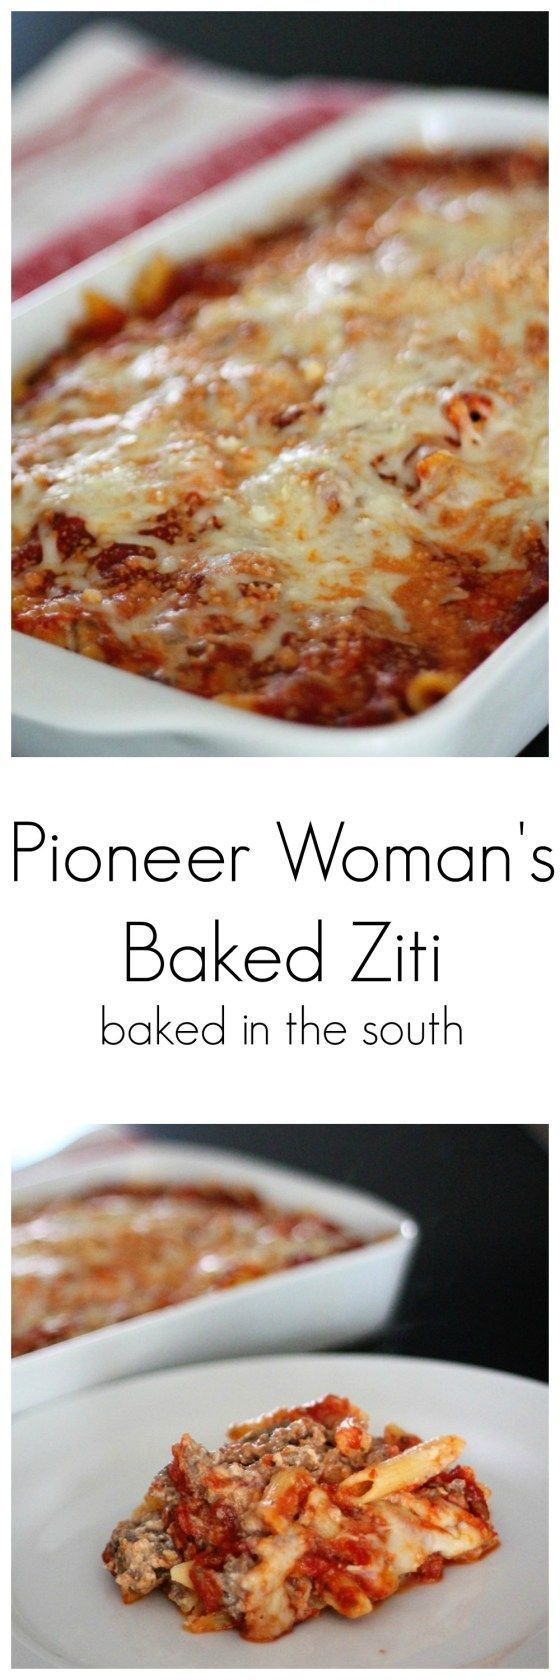 44 Amazing and Delicious Pioneer Woman Recipes You Need in Your Life - Page 4 of 4